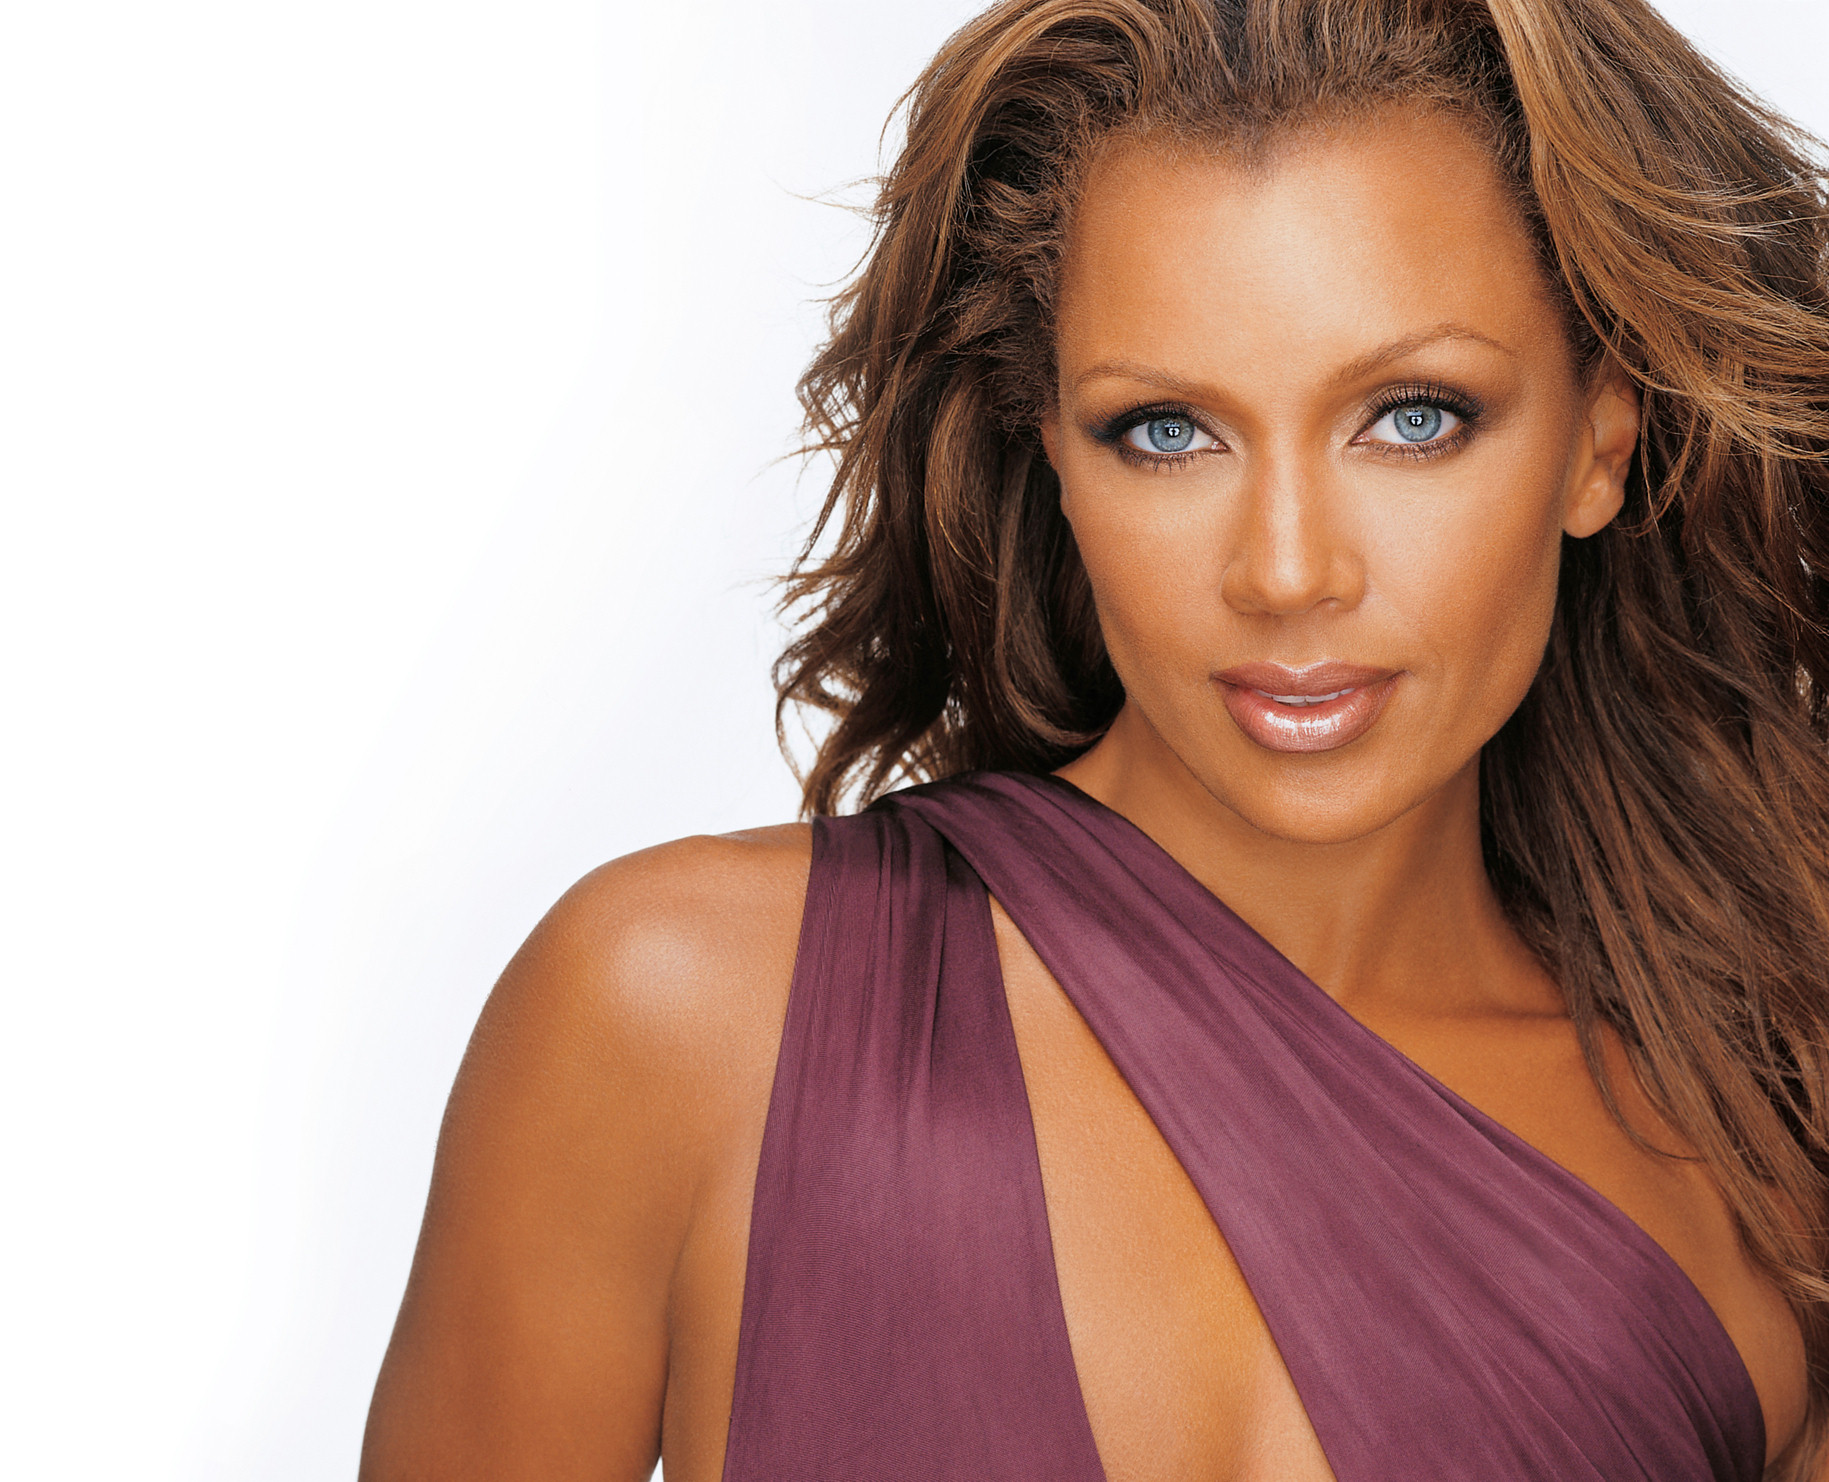 Vanessa Williams. (photo: Rod Spicer)